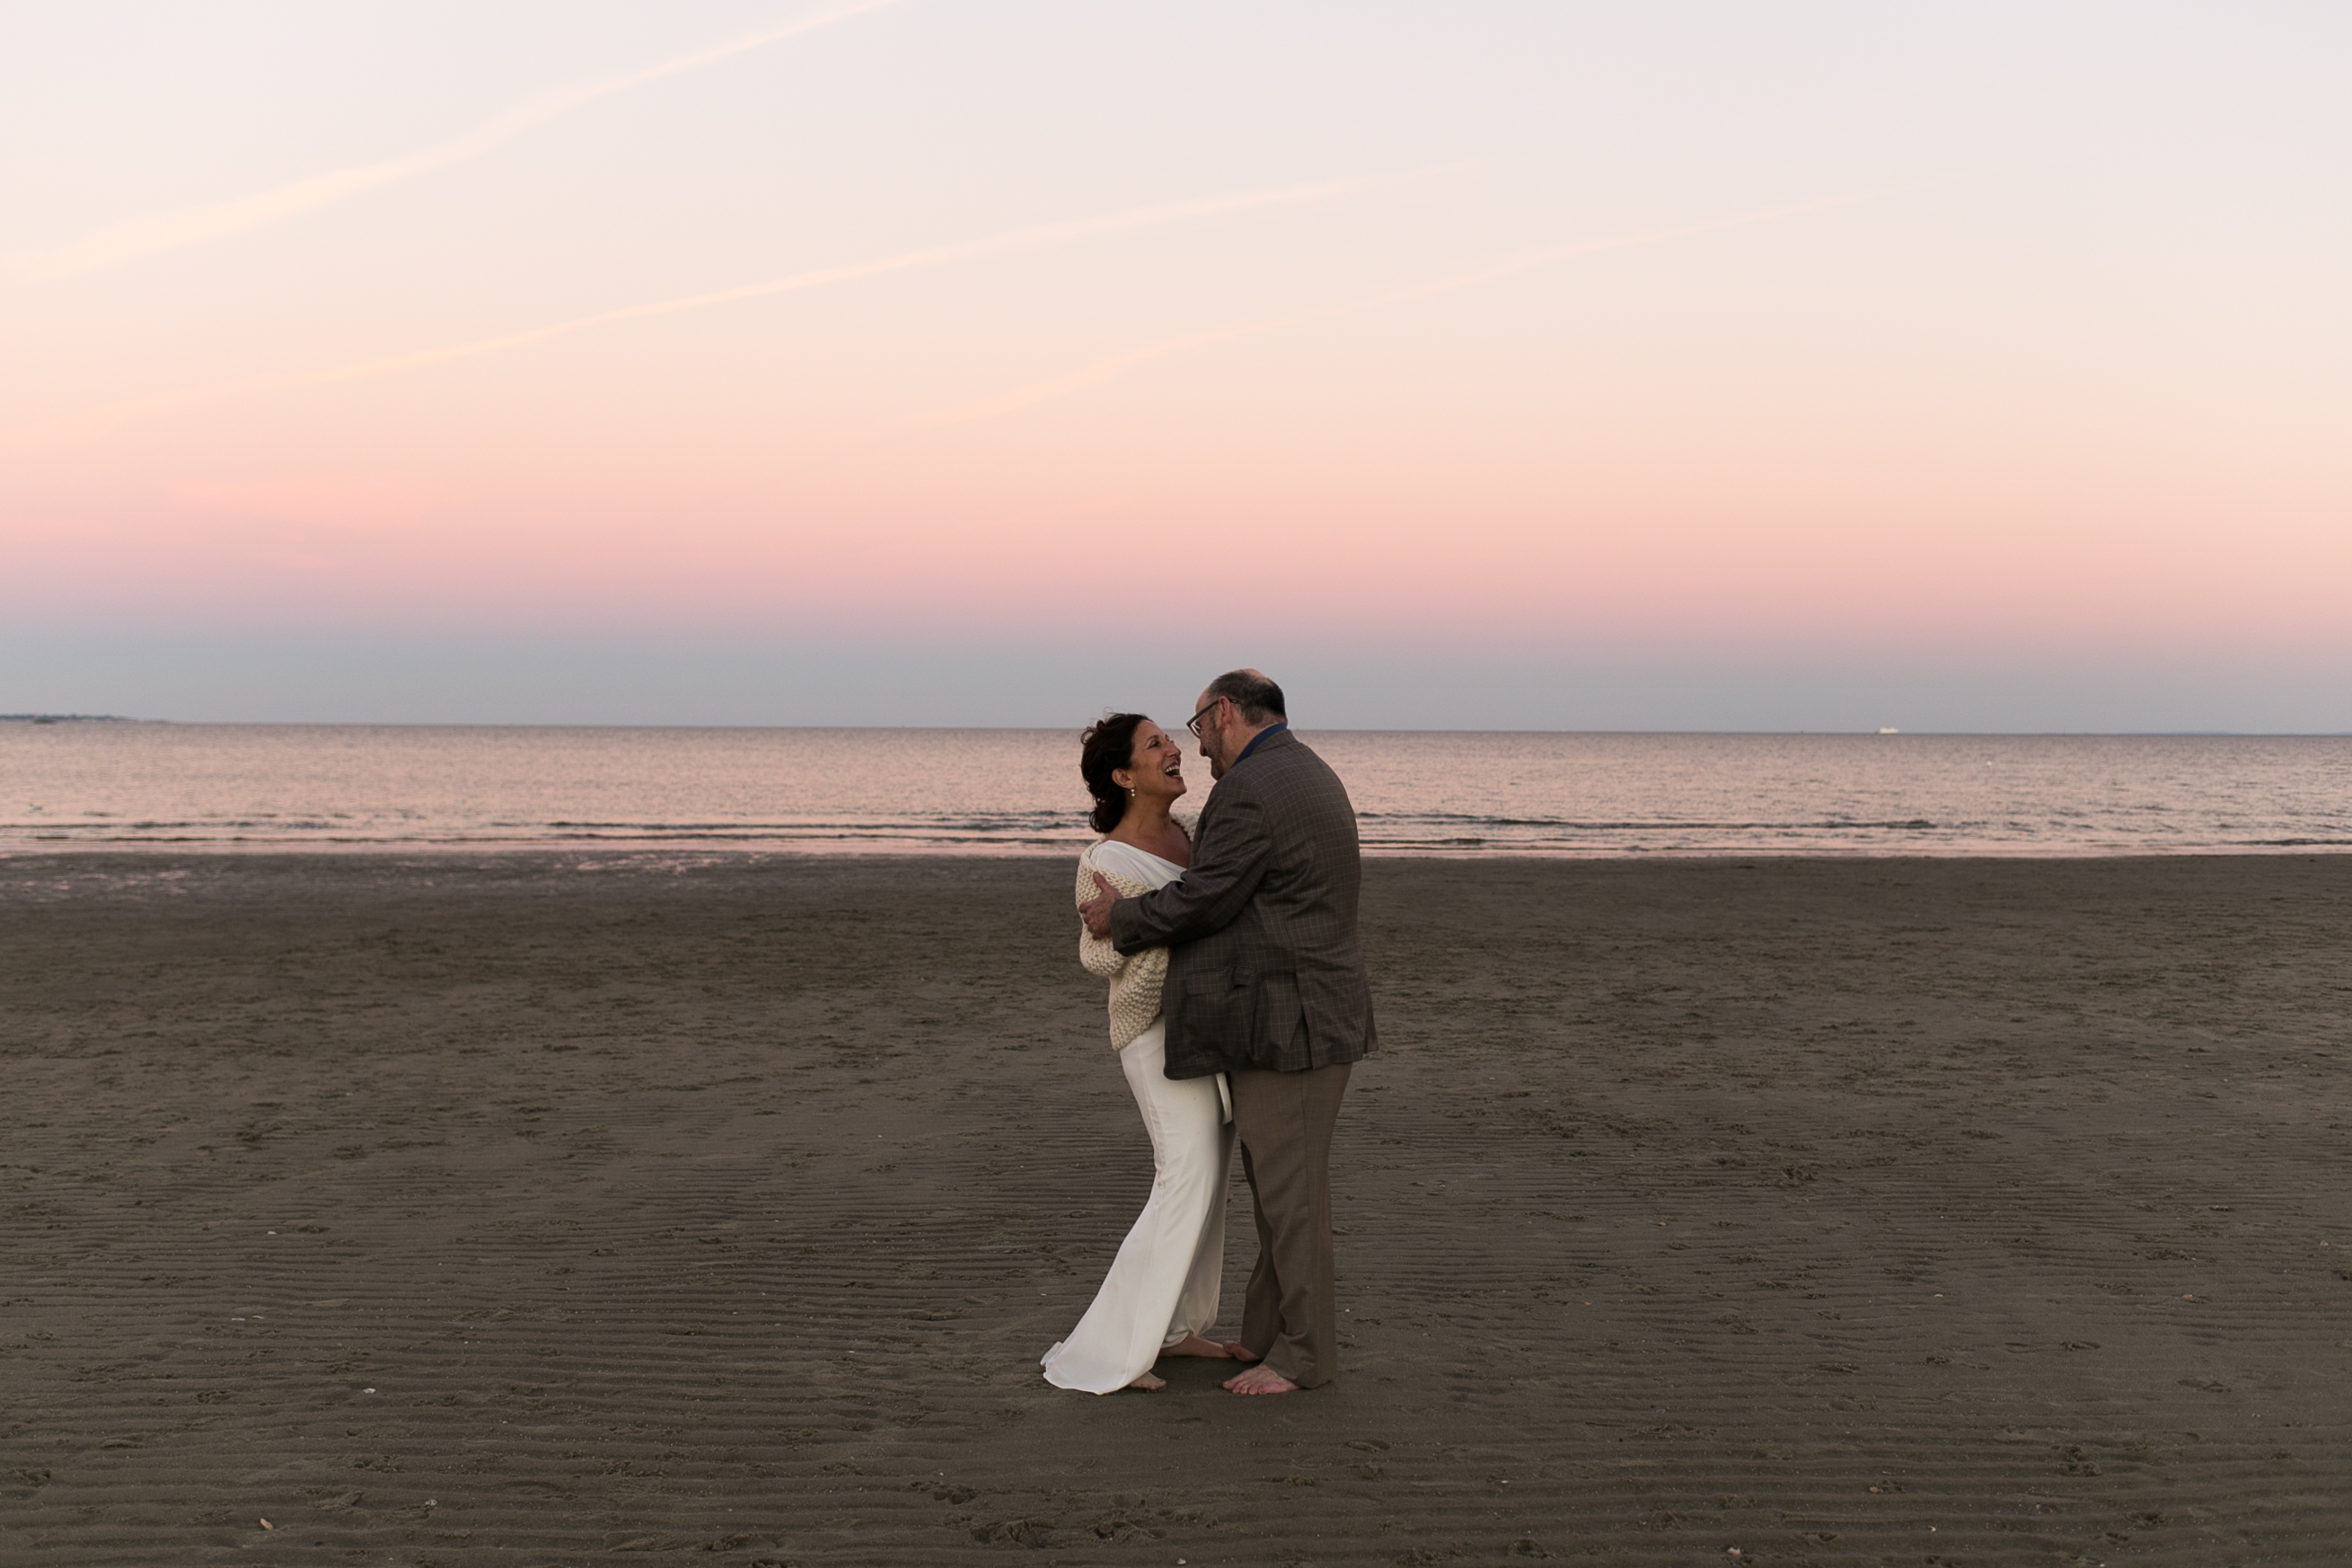 ct beach wedding photos outdside on the beach in ct